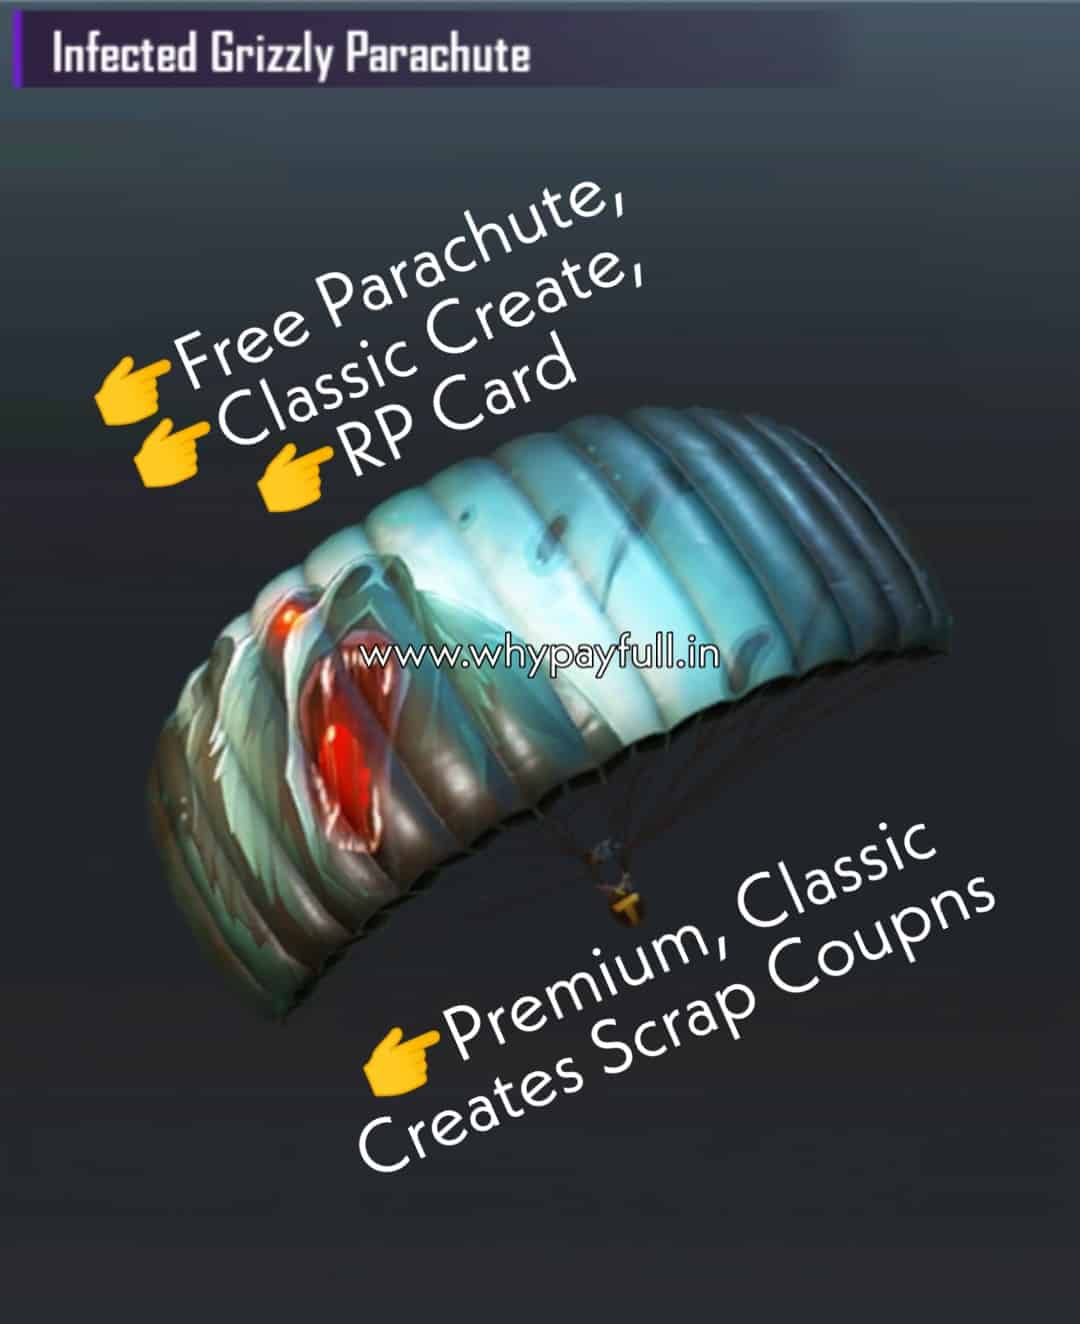 PUBG LOOT: Free Permanent Parachute, Classic Create, And RP Card for Elite Users